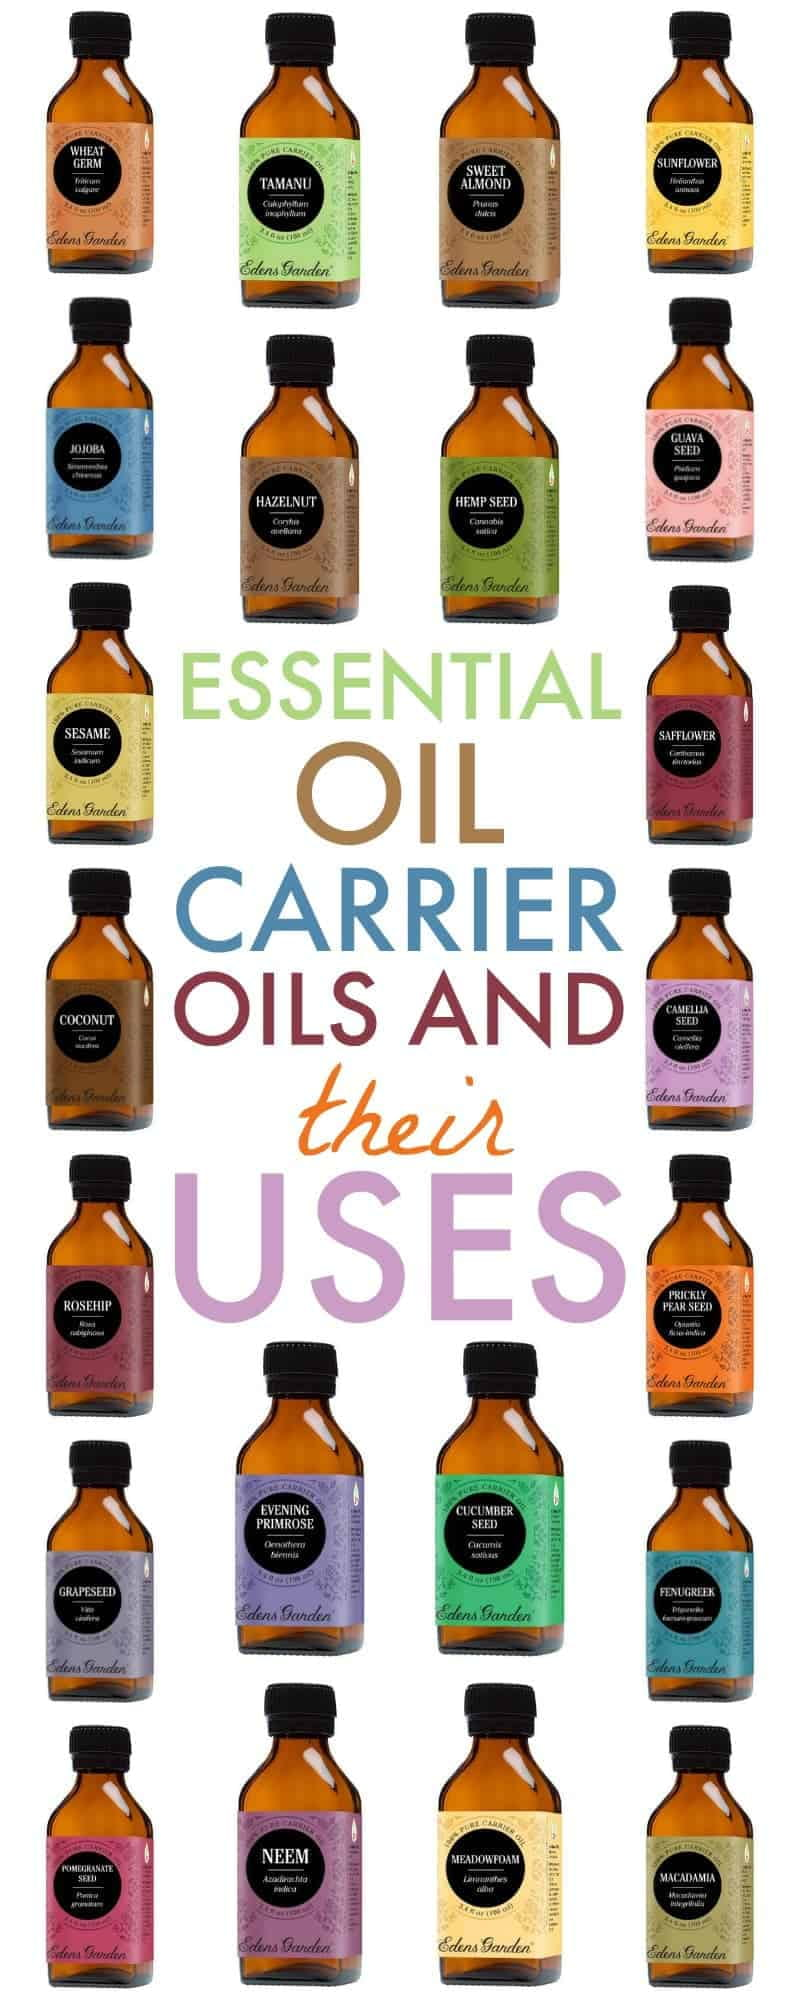 This list of essential oil carrier oils and their uses will help you choose which carrier oil will work best for your needs and skin type.